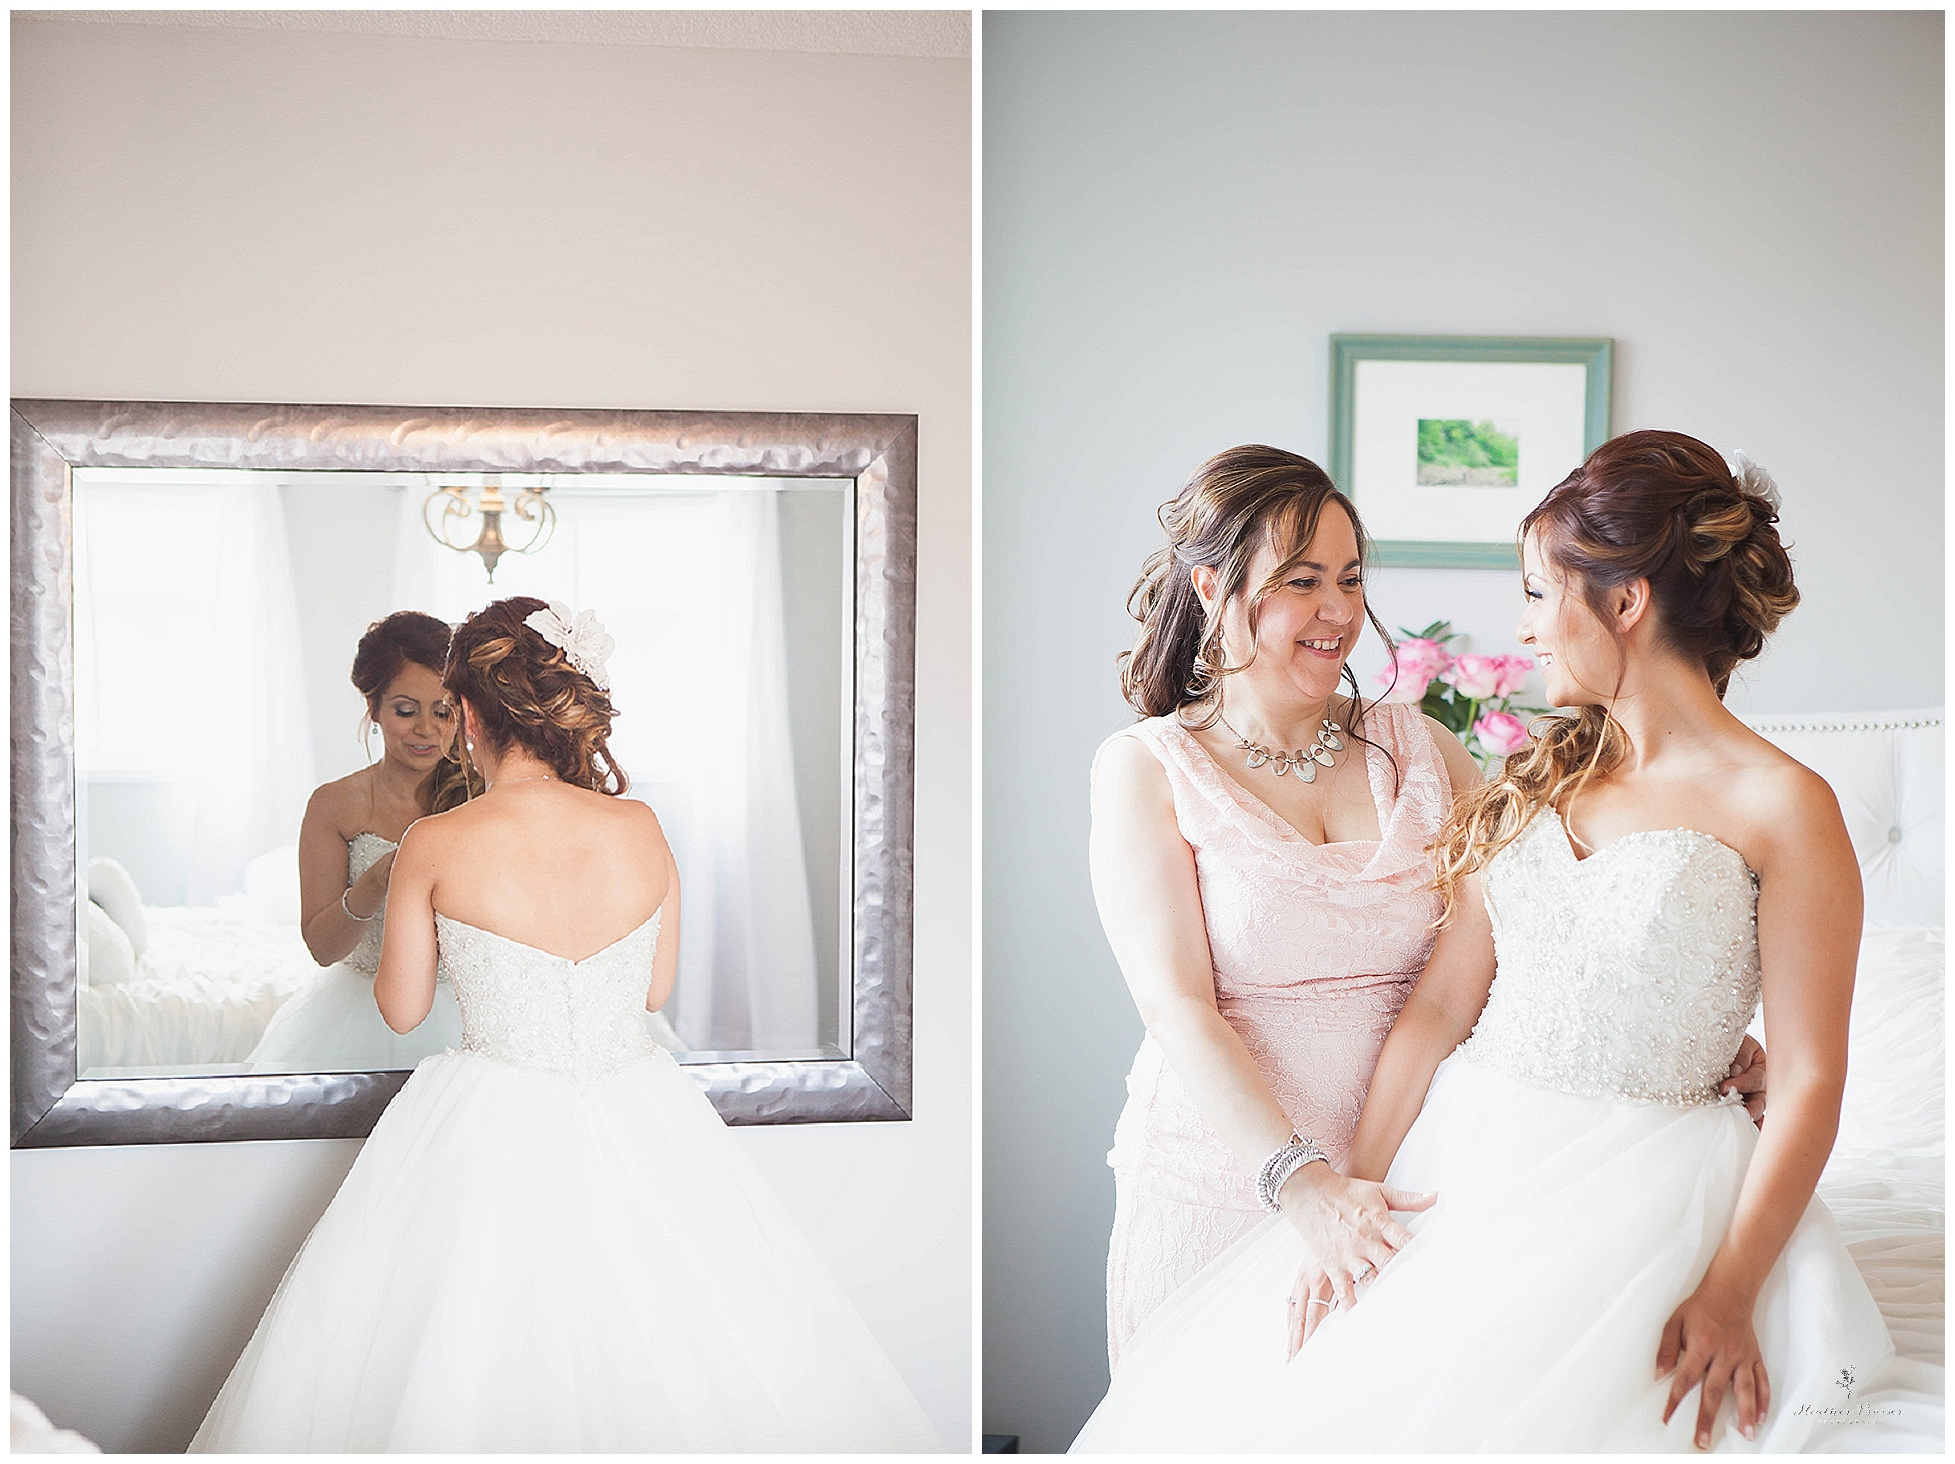 Beautiful Armenian Wedding Toronto Wedding Amp Portrait Photography By Heather Prosser Photography